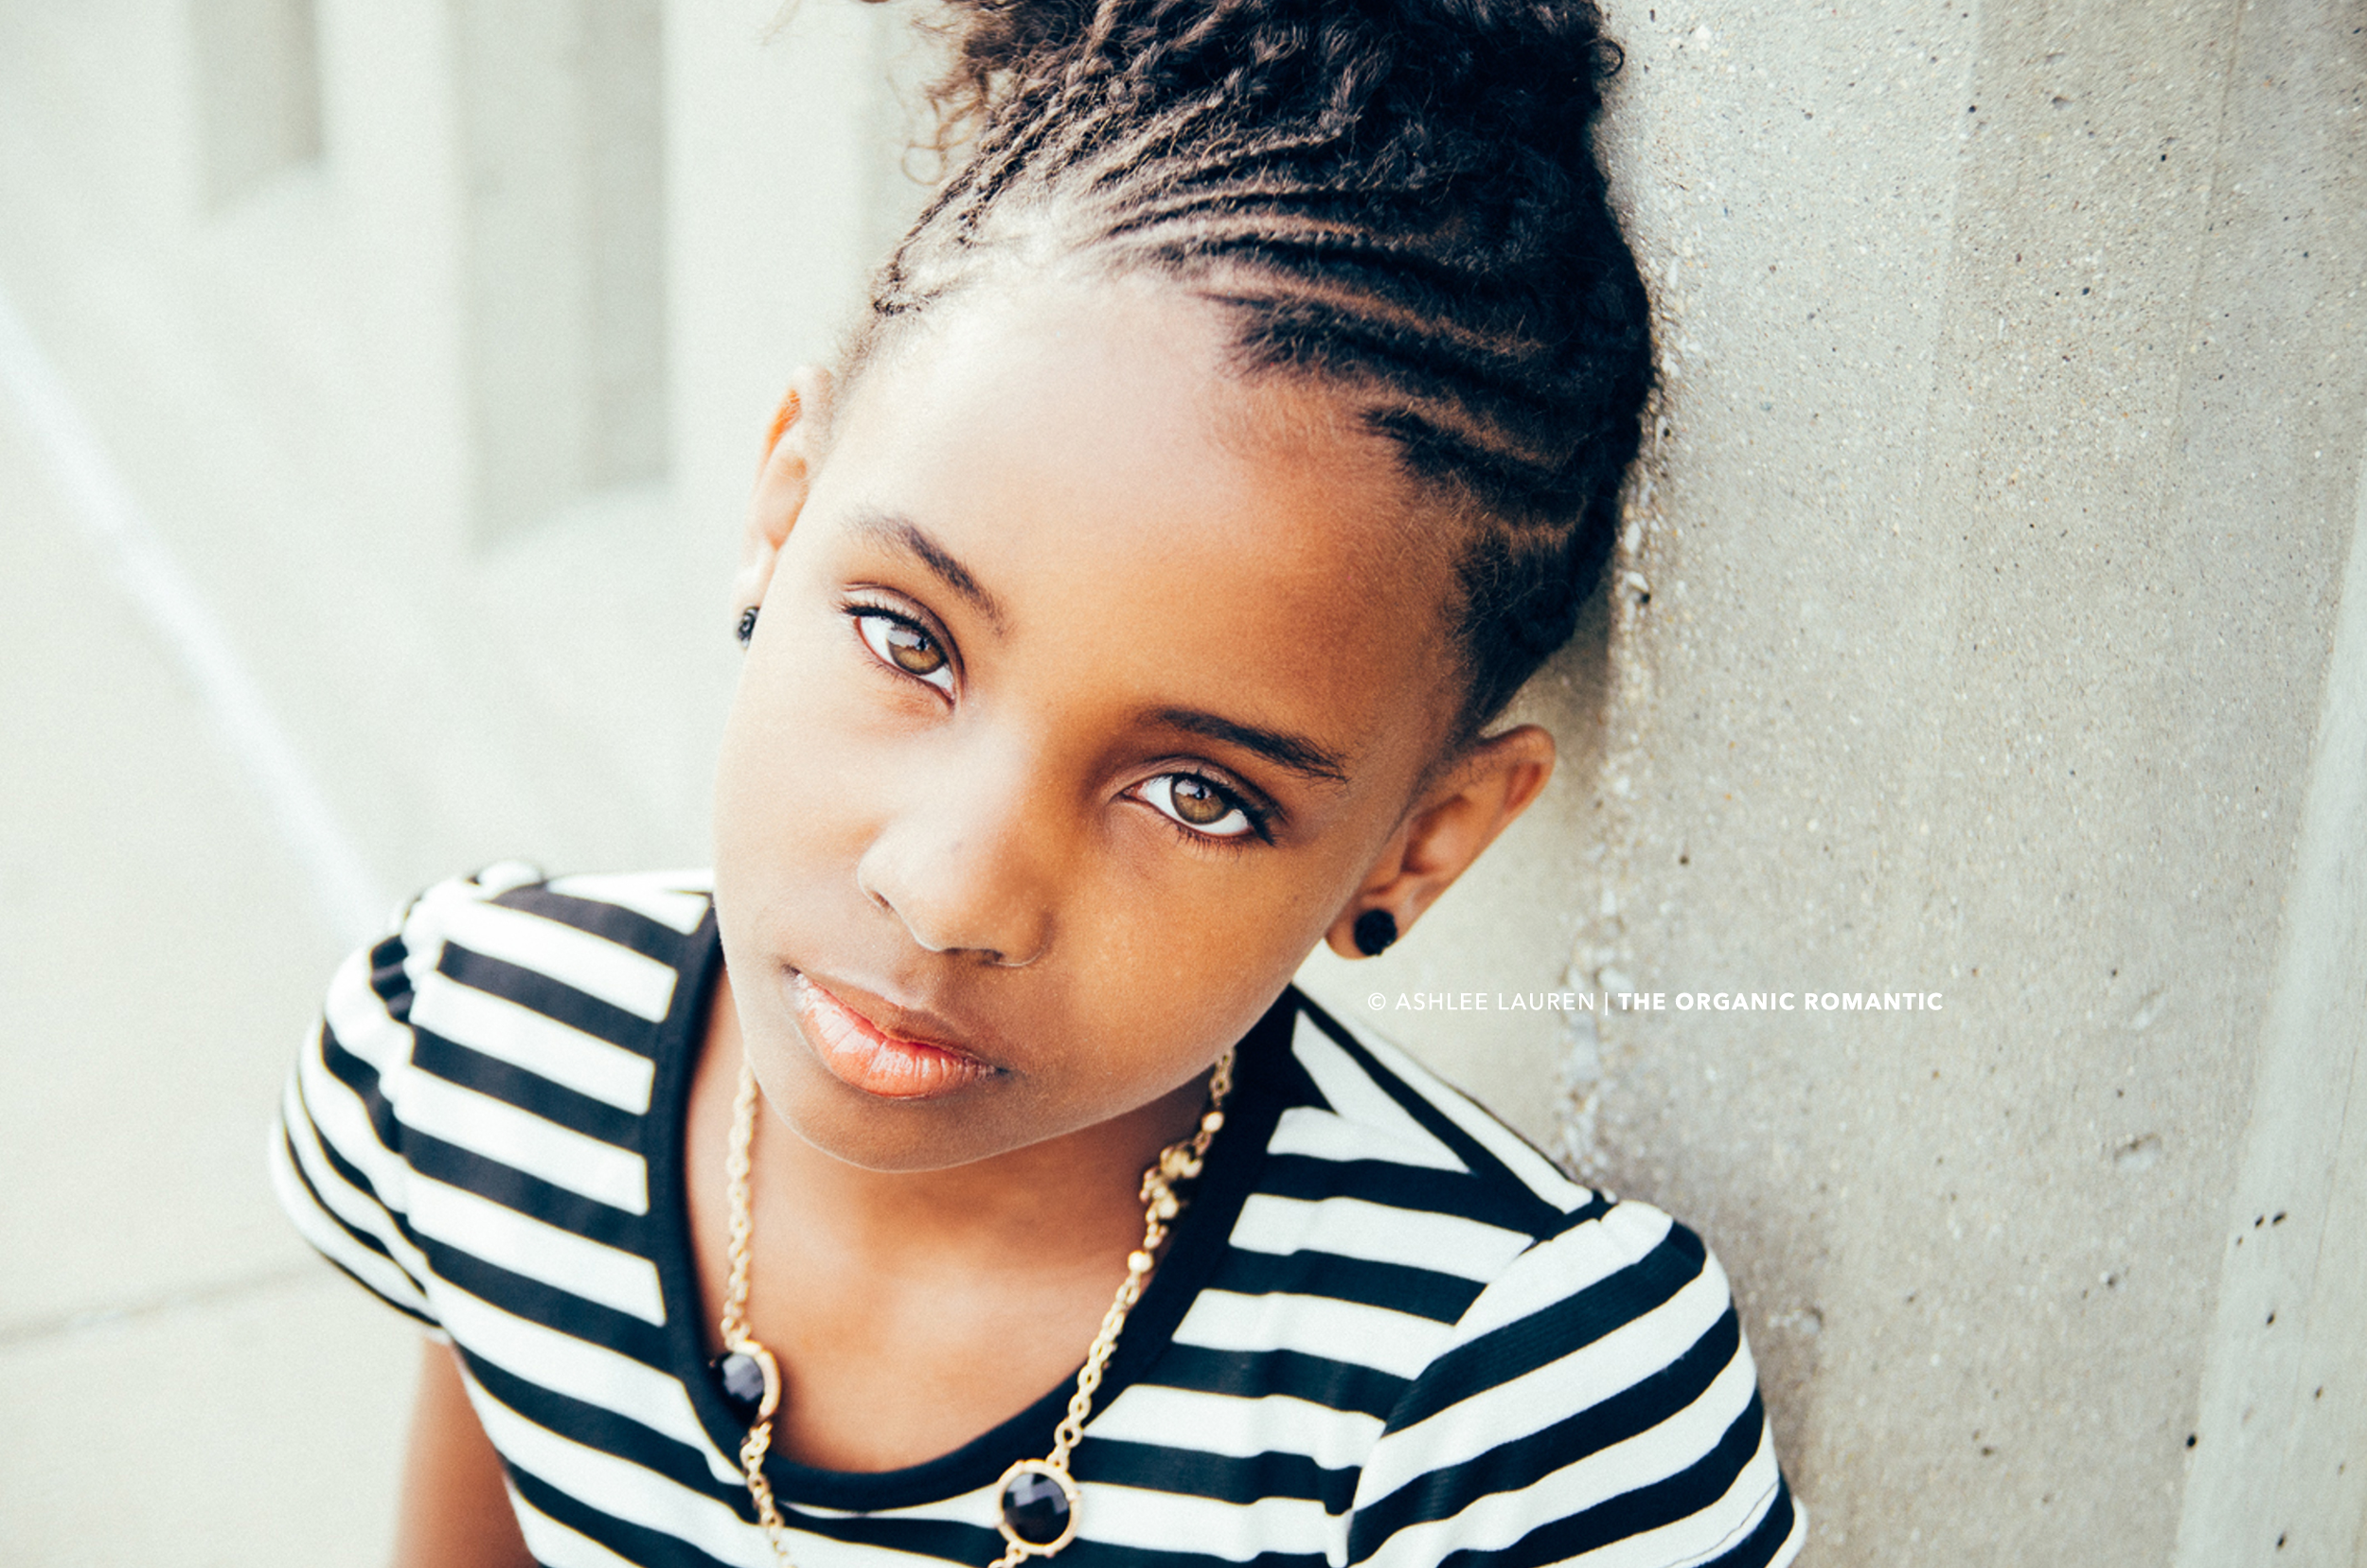 Craving some images to boost your child's modeling portfolio? Let's chat. I can photograph her organically and authentically. Sessions in Indianapolis, IN